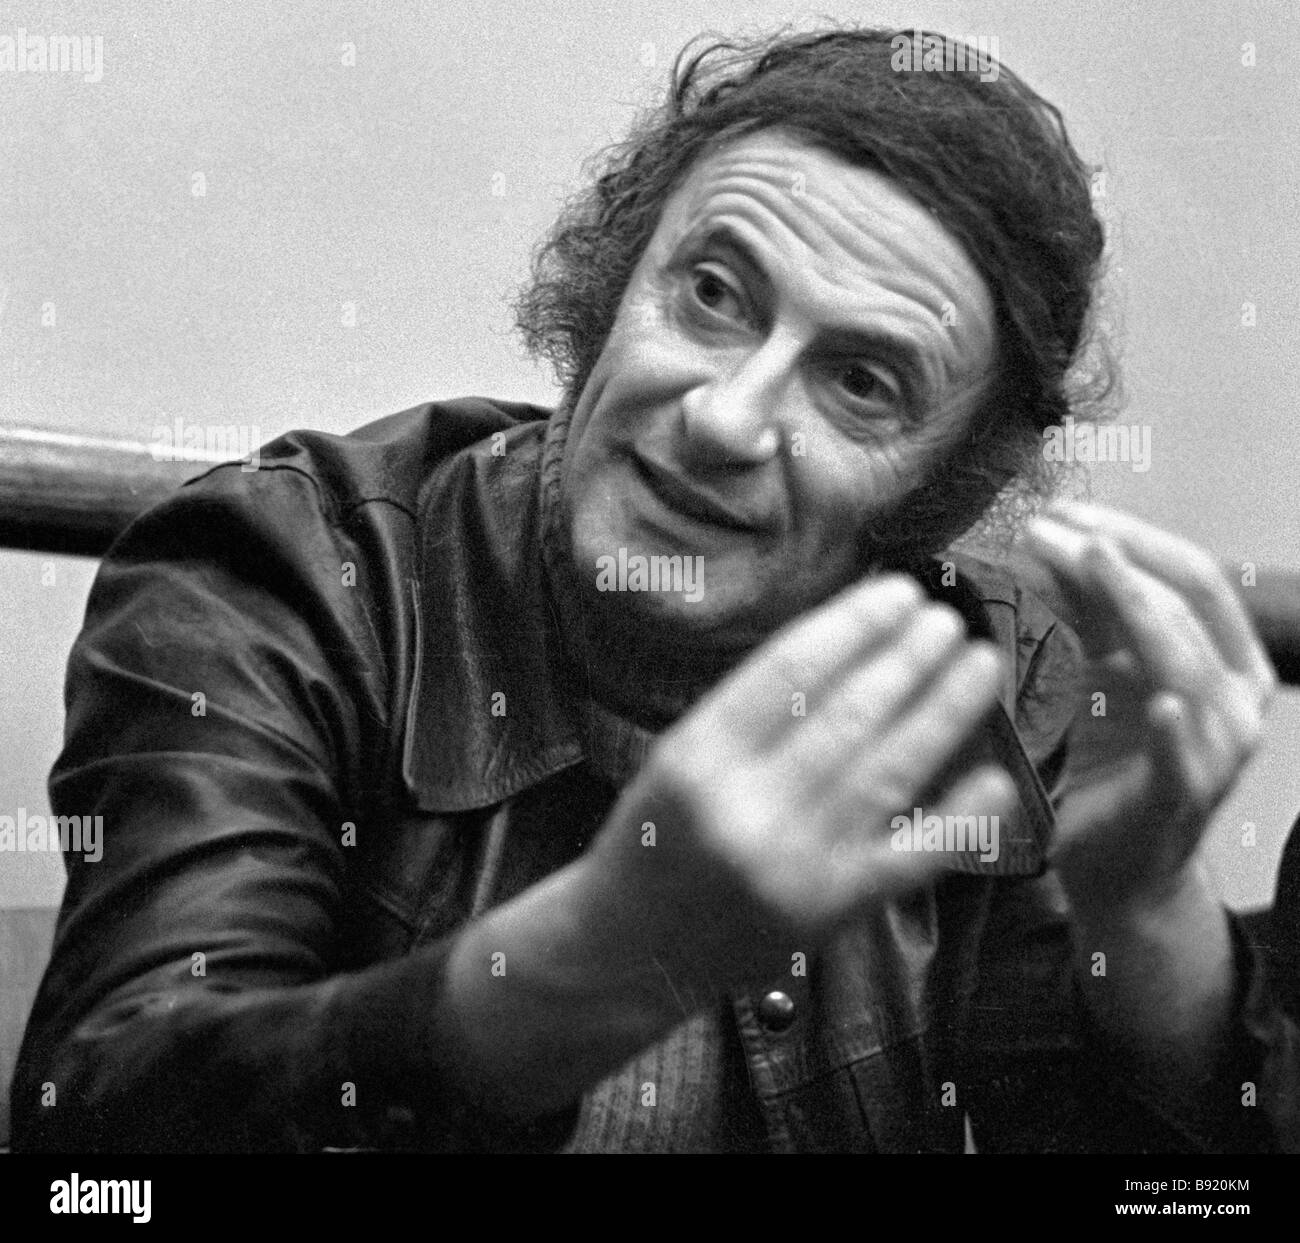 French actor Marcel Marceau - Stock Image